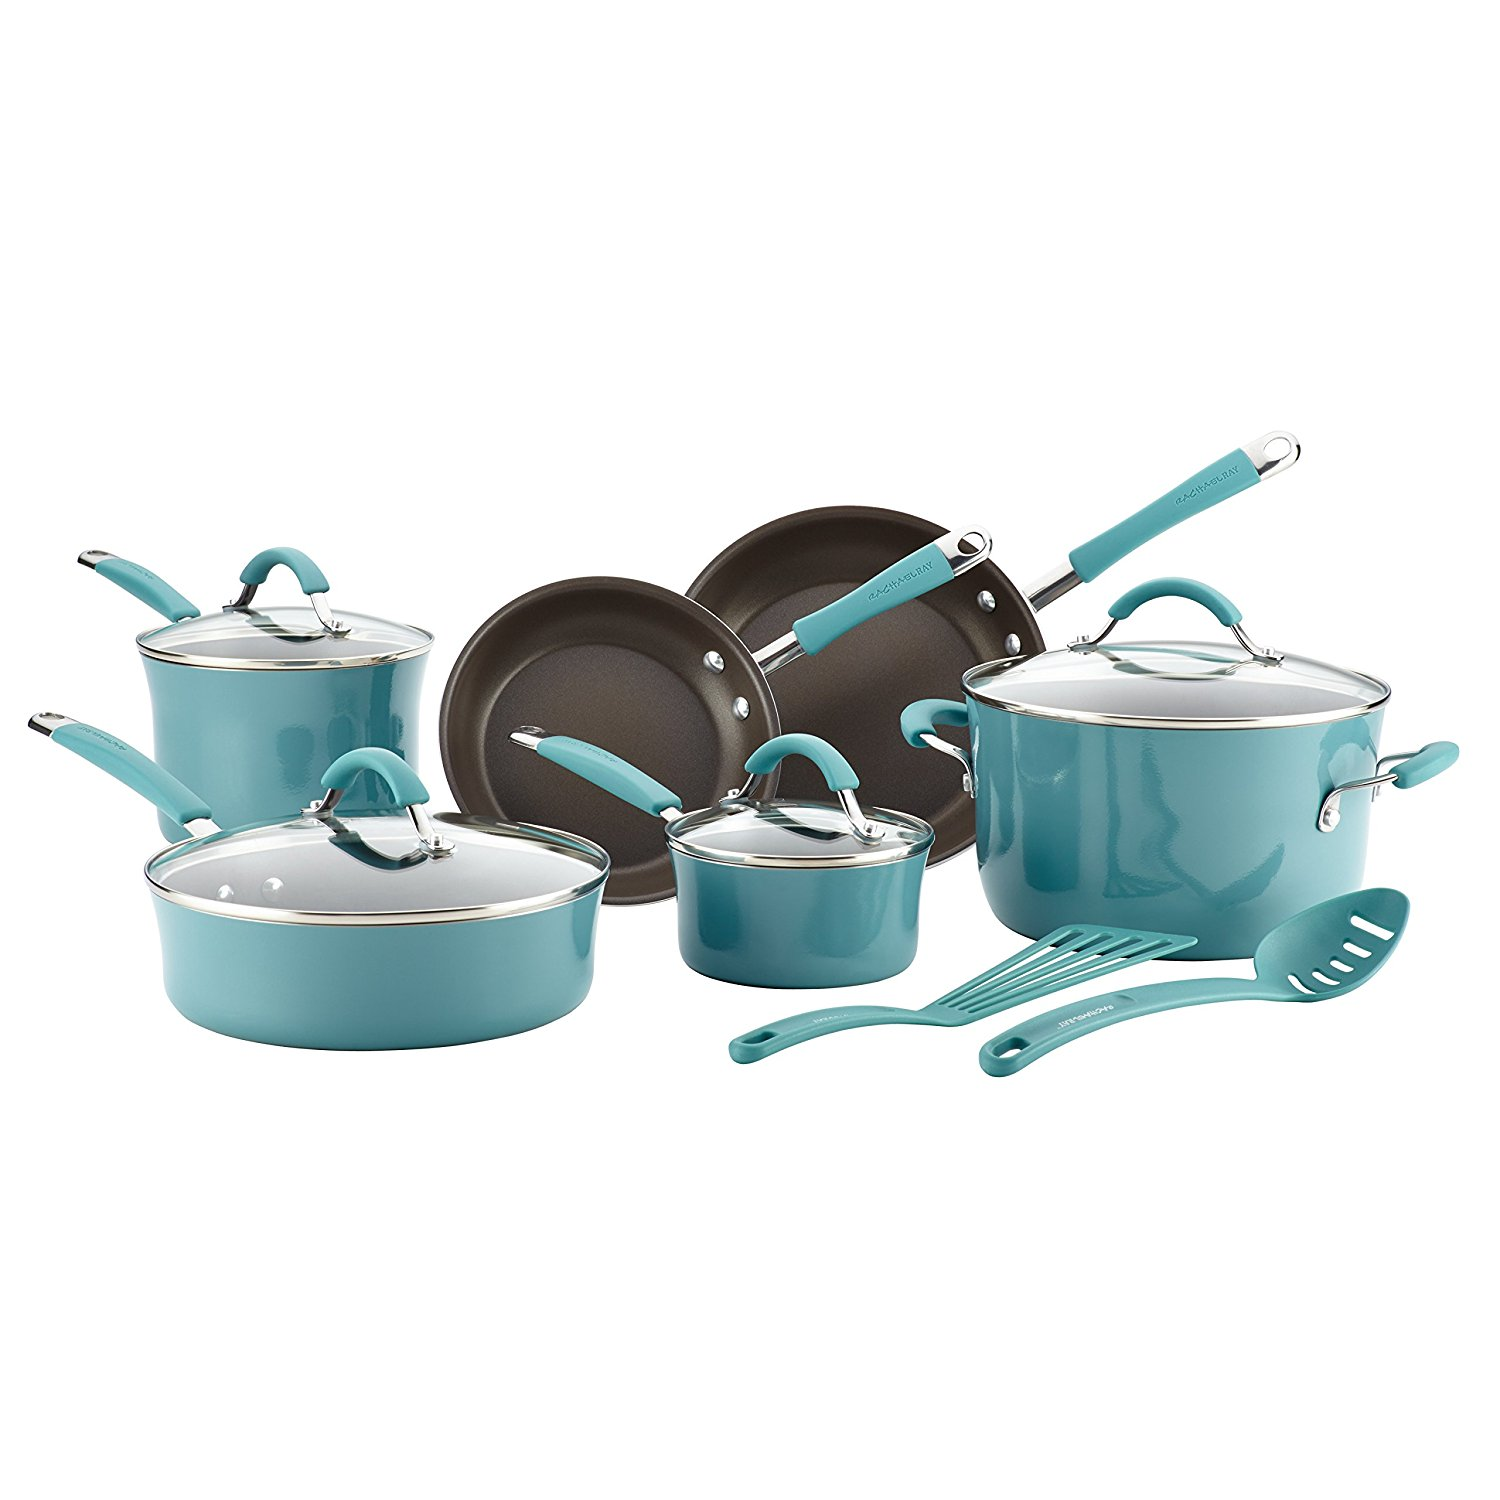 This stylish cookware set is a welcome addition to inviting serveware